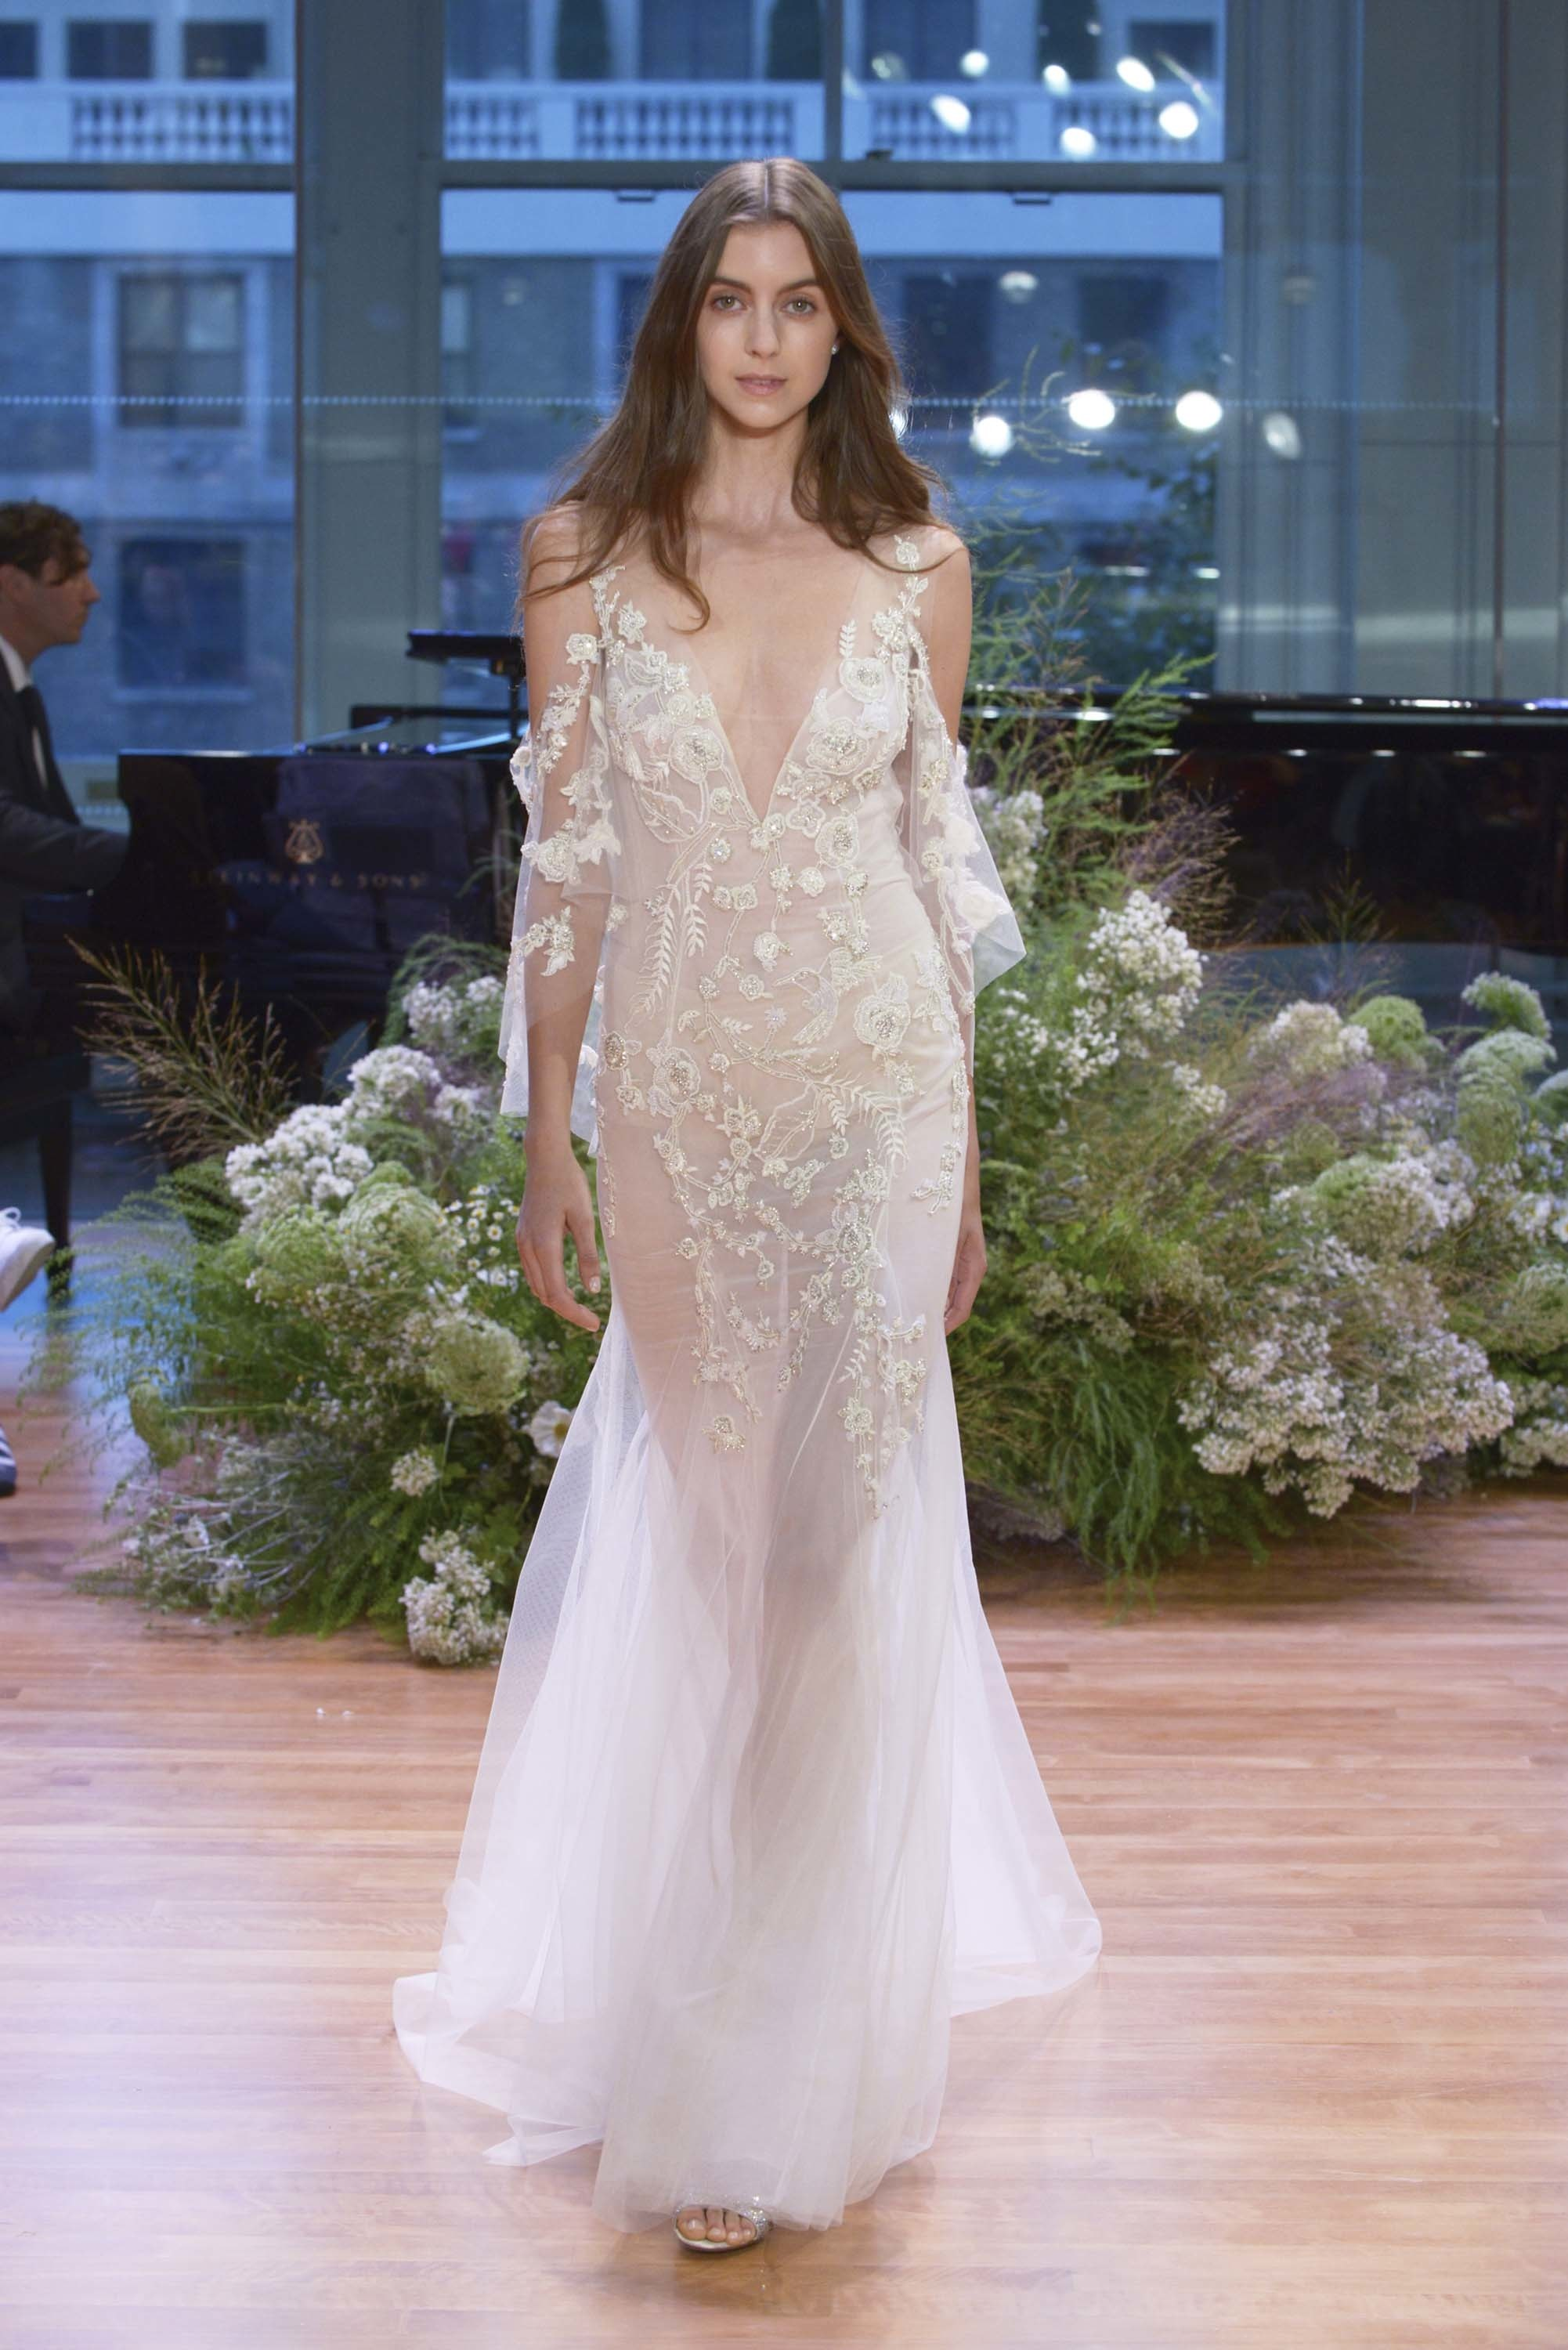 LOVE FIND CO. // The hottest bridal gown trends of 2016 - Marchesa // Follow @lovefindco on Instagram & Pinterest